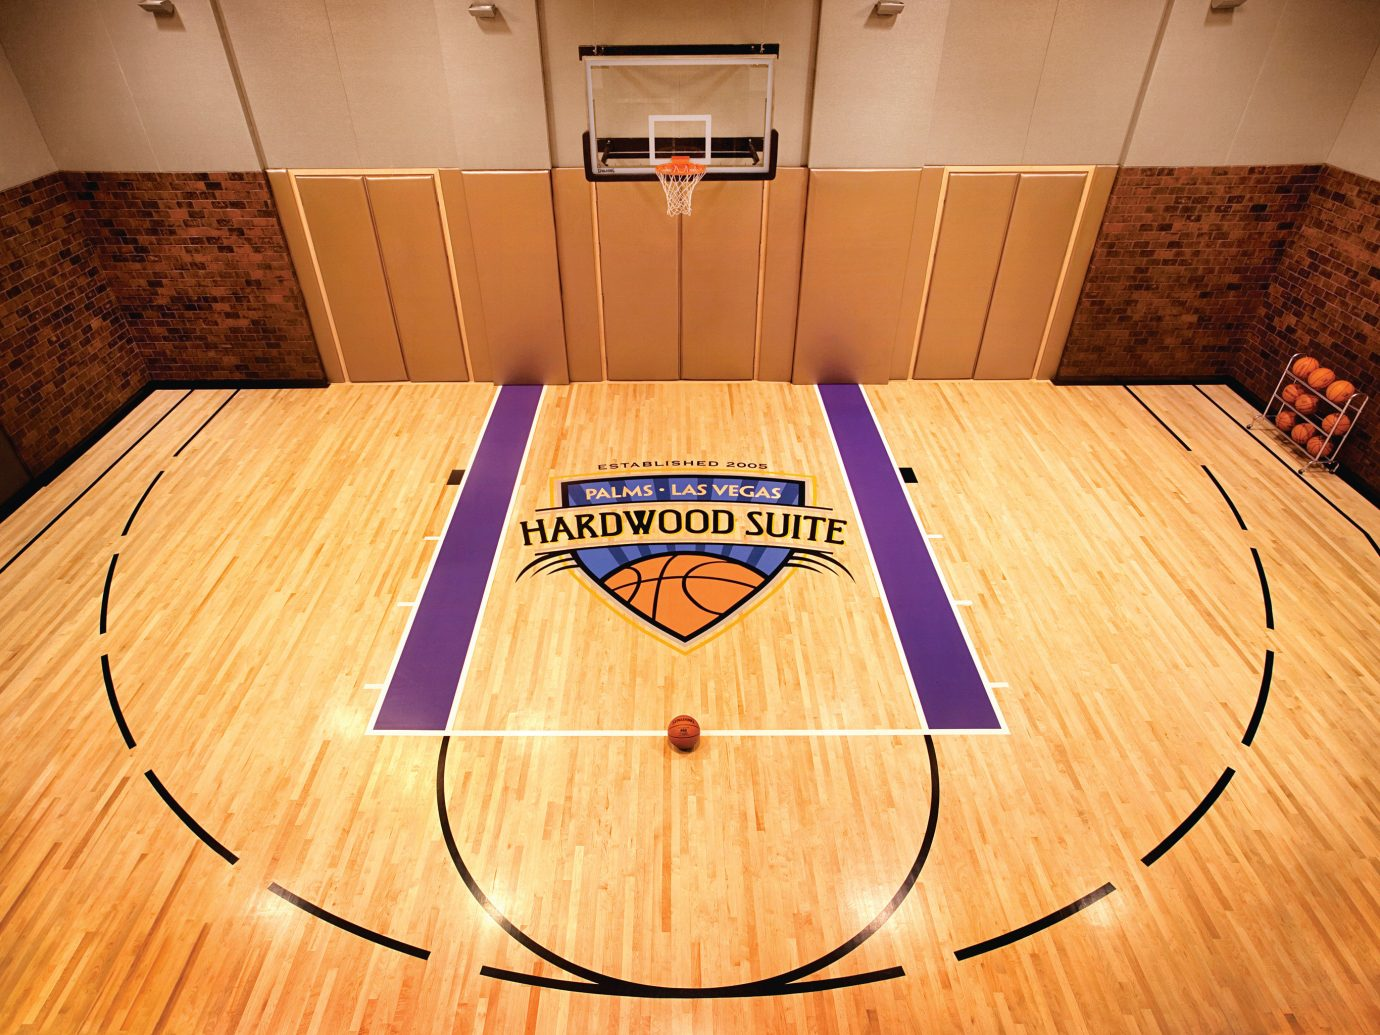 Hotels Luxury Travel indoor floor sport venue flooring basketball court hardwood structure wood table wood flooring indoor games and sports sports ball game varnish basketball wood stain